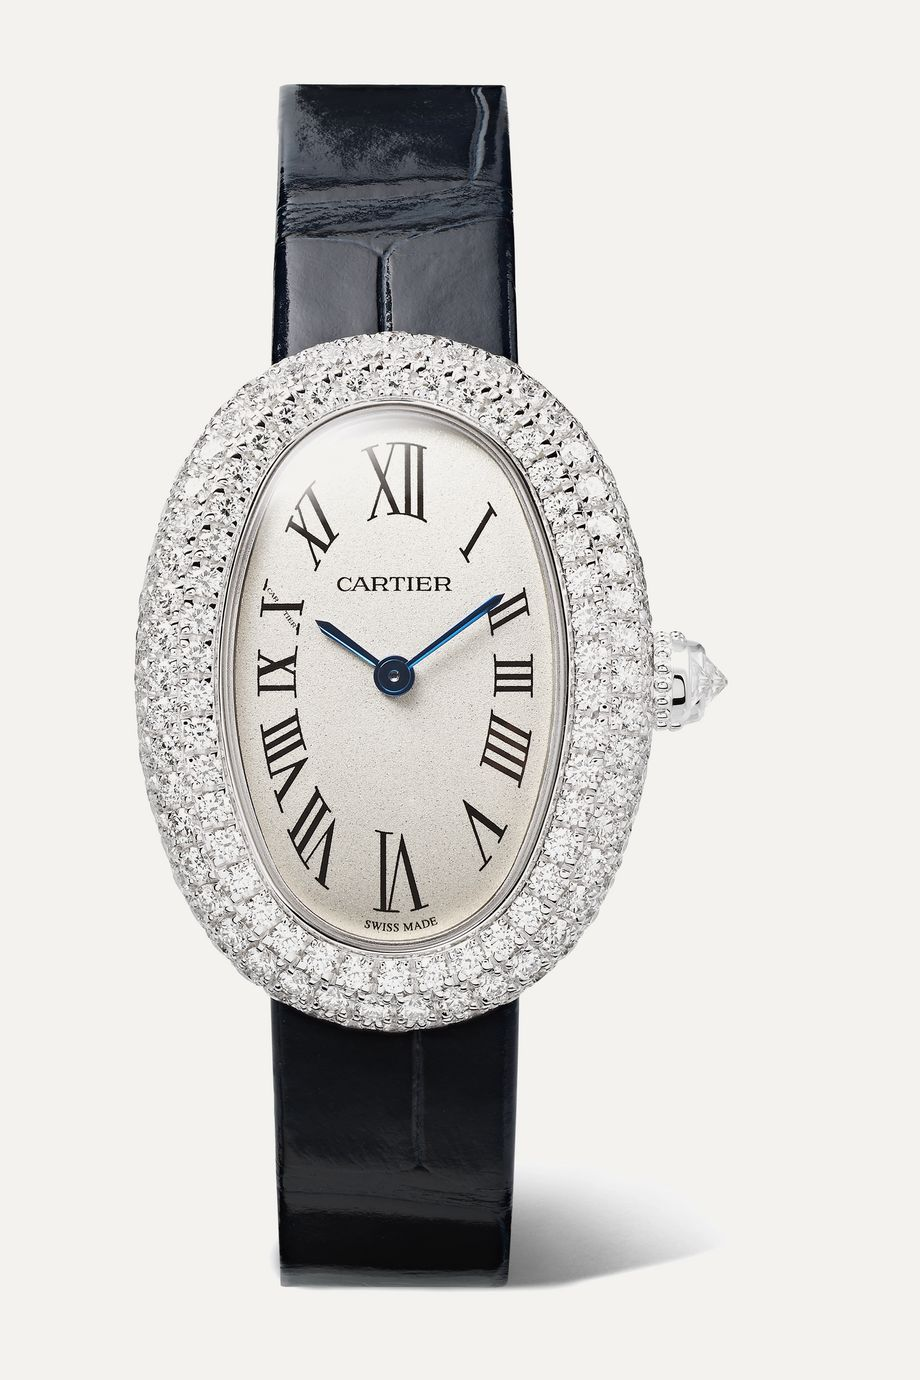 Cartier Baignoire 1920 26mm small rhodium-finish 18-karat white gold, alligator and diamond watch